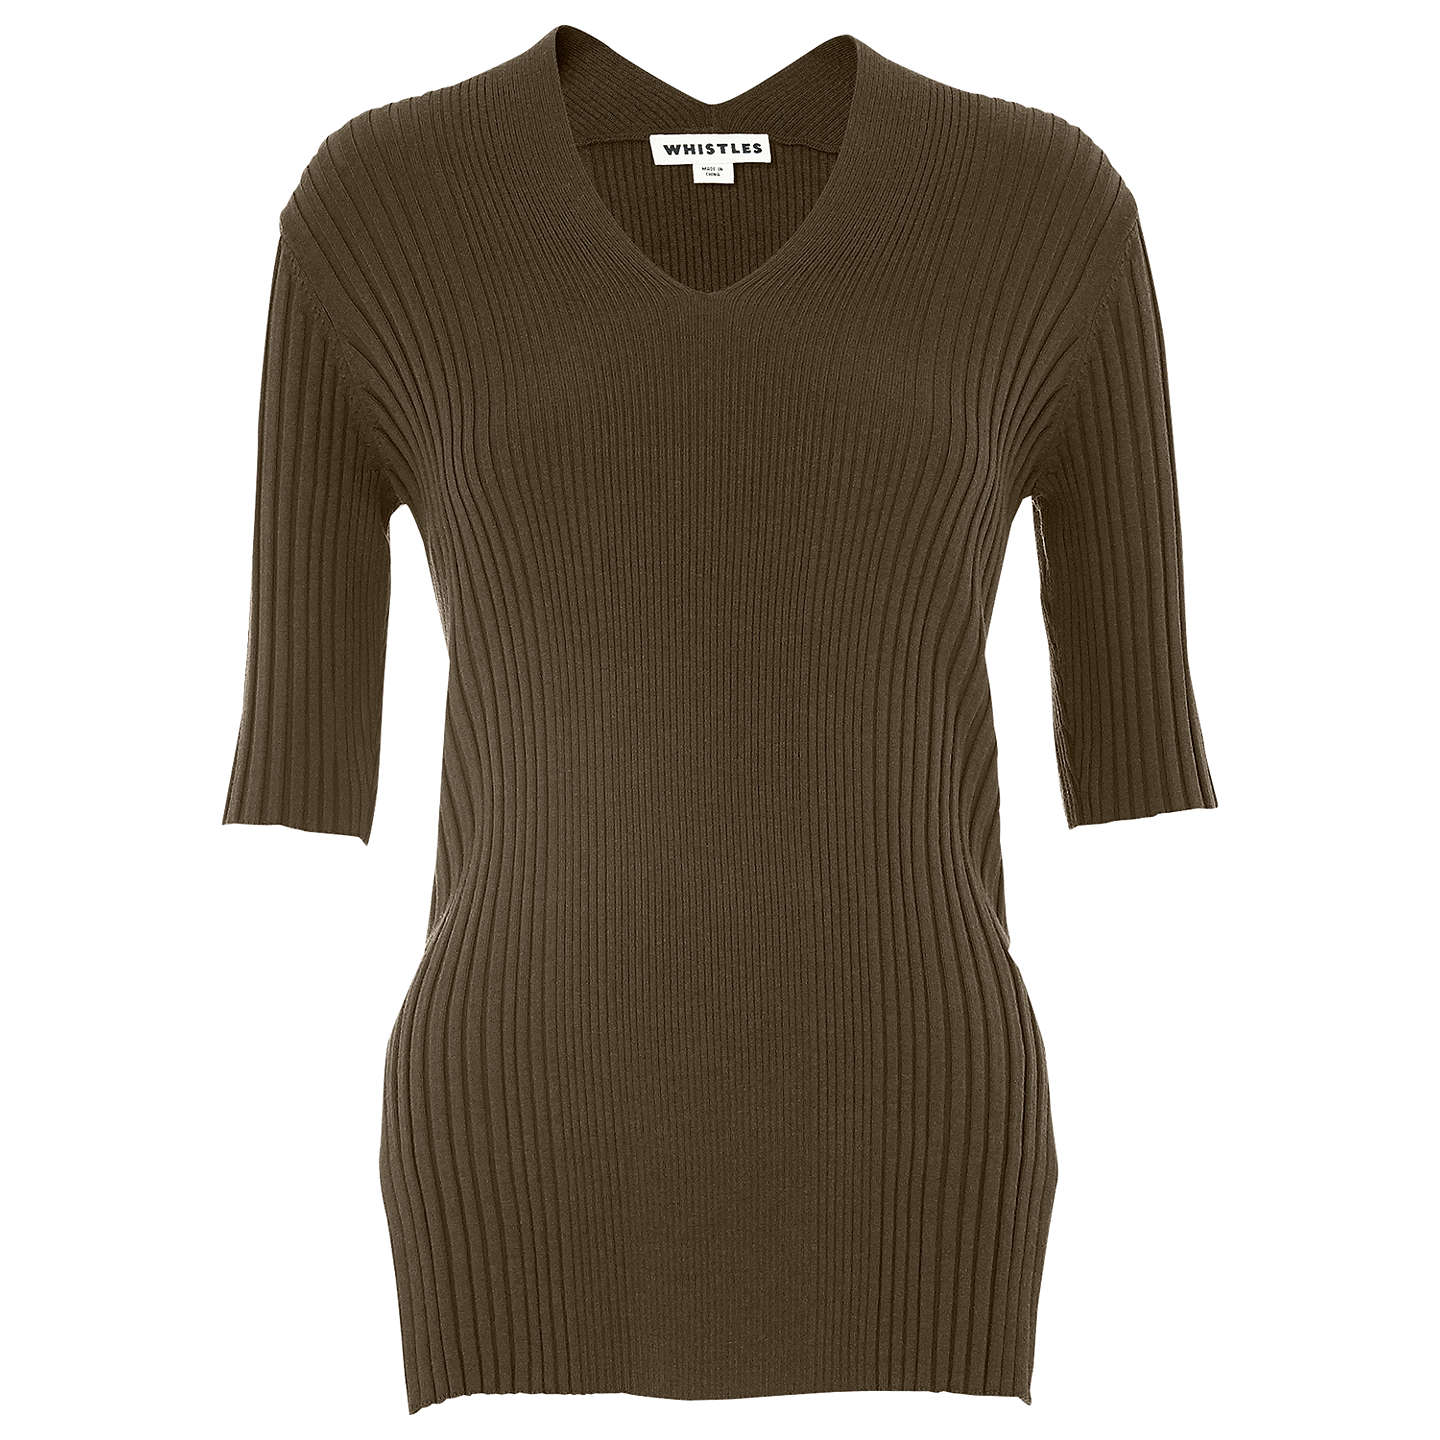 BuyWhistles Rib V Neck Top, Olive, 6 Online at johnlewis.com